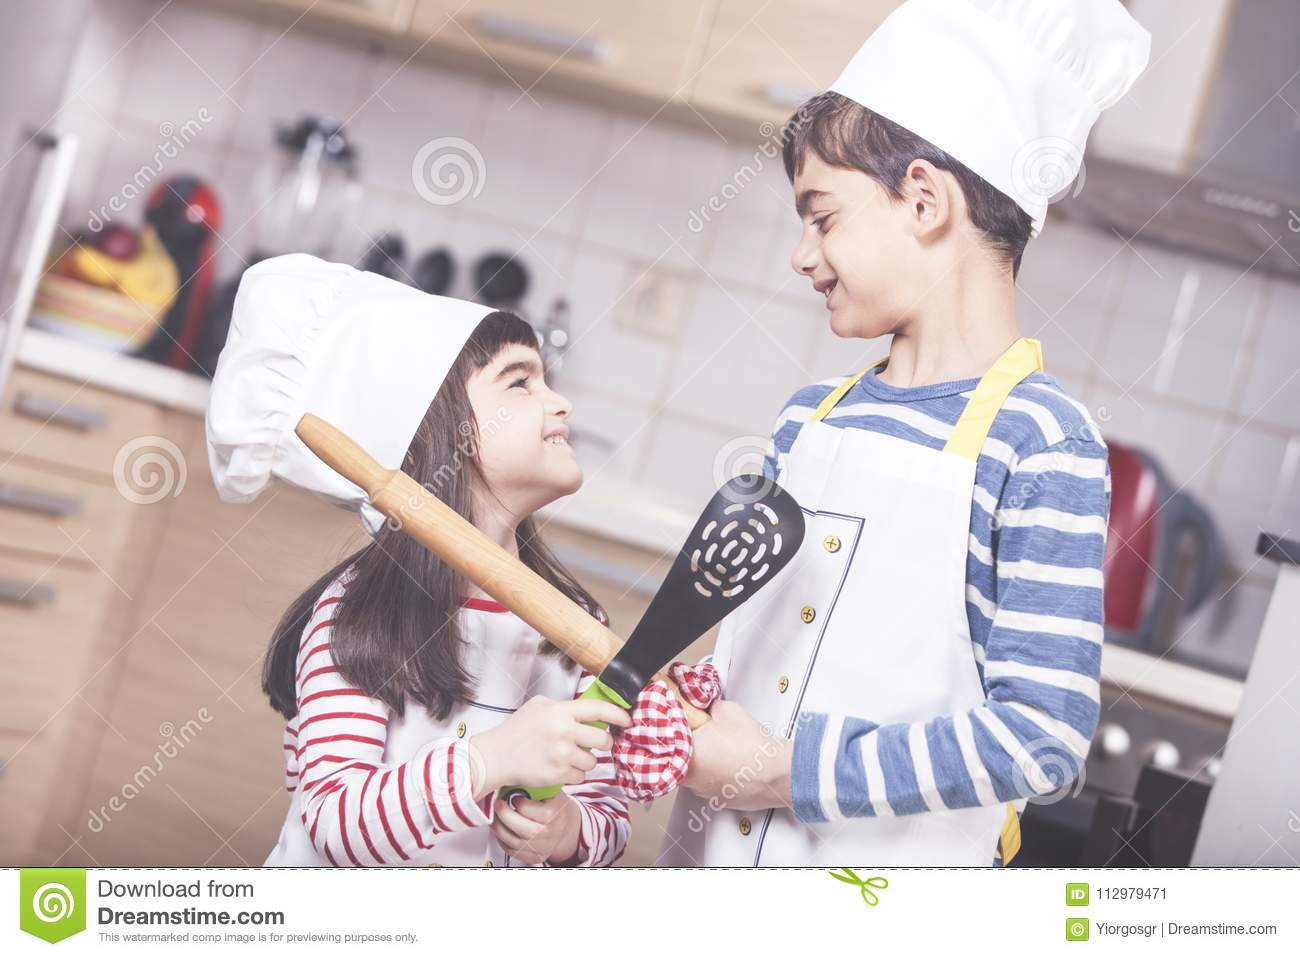 Kids in chef hats in the kitchen